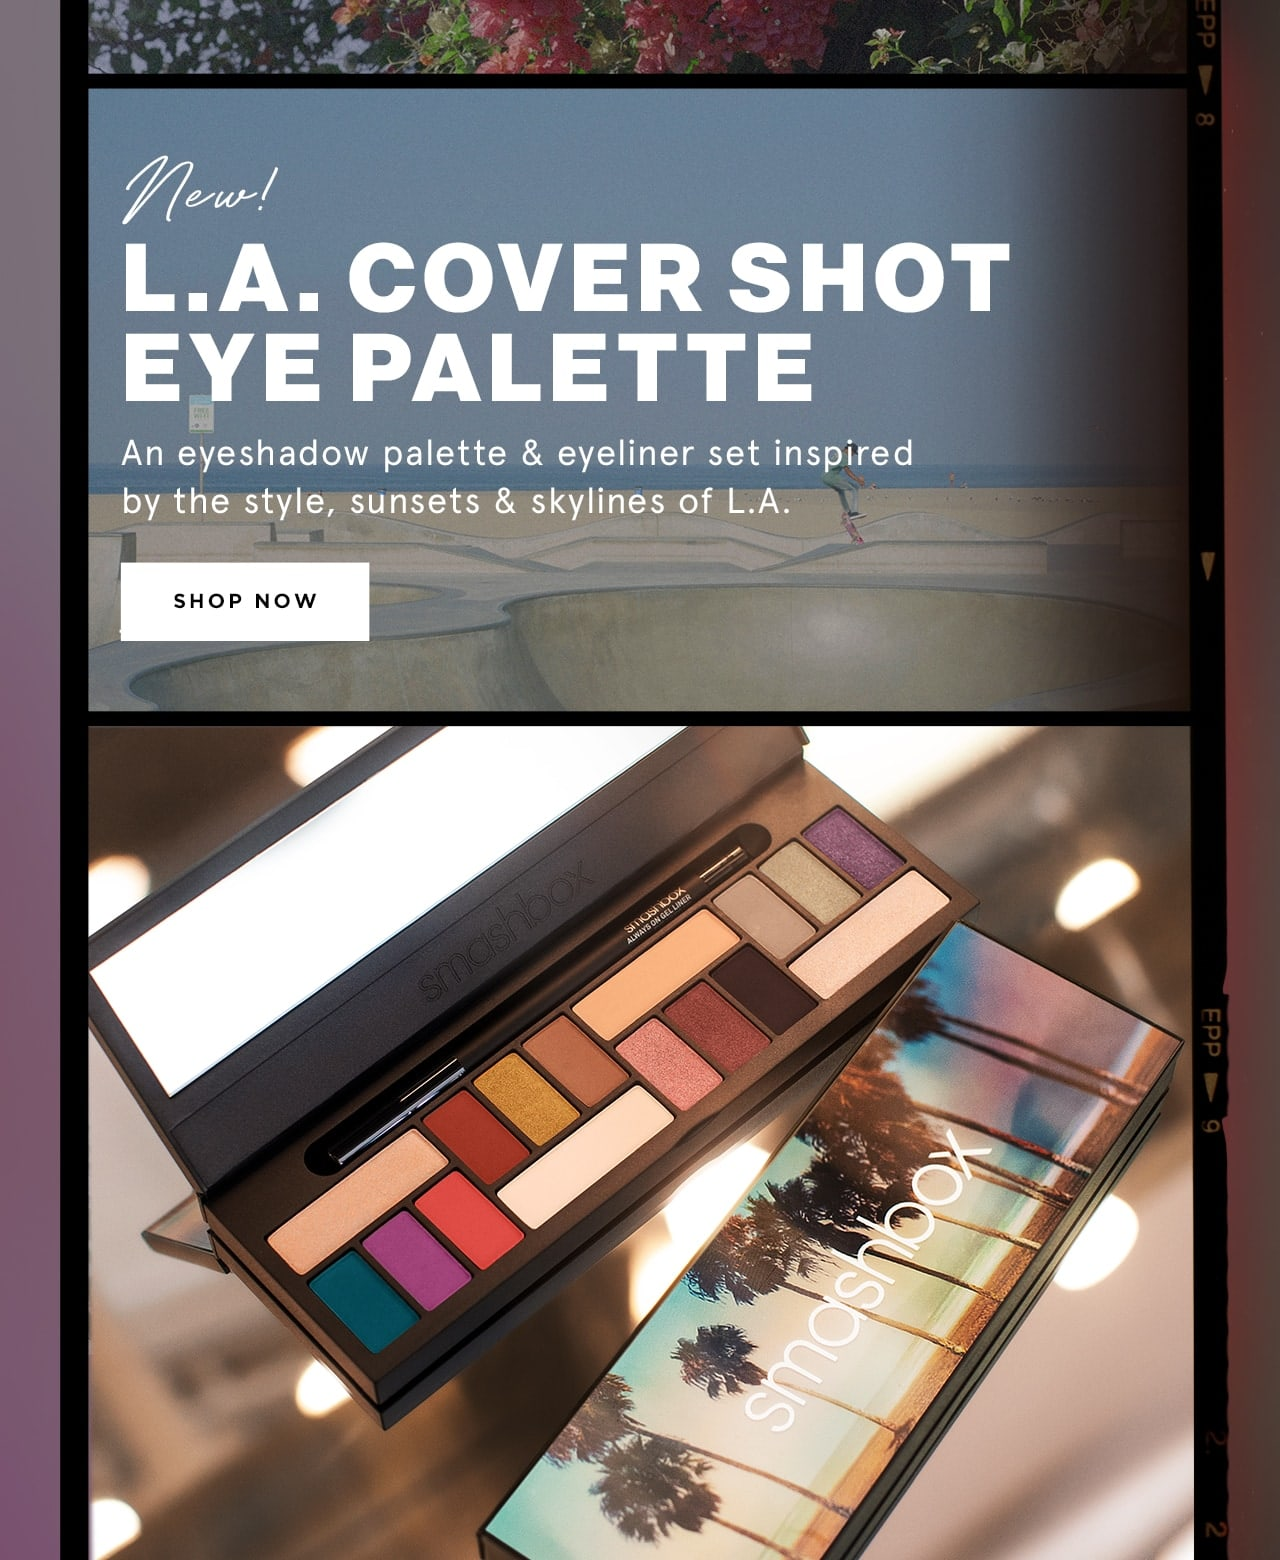 L.A Cover shot eye palette. An eye shadow palette and eyeliner set inspired by the style, sunsets and skylines of L.A